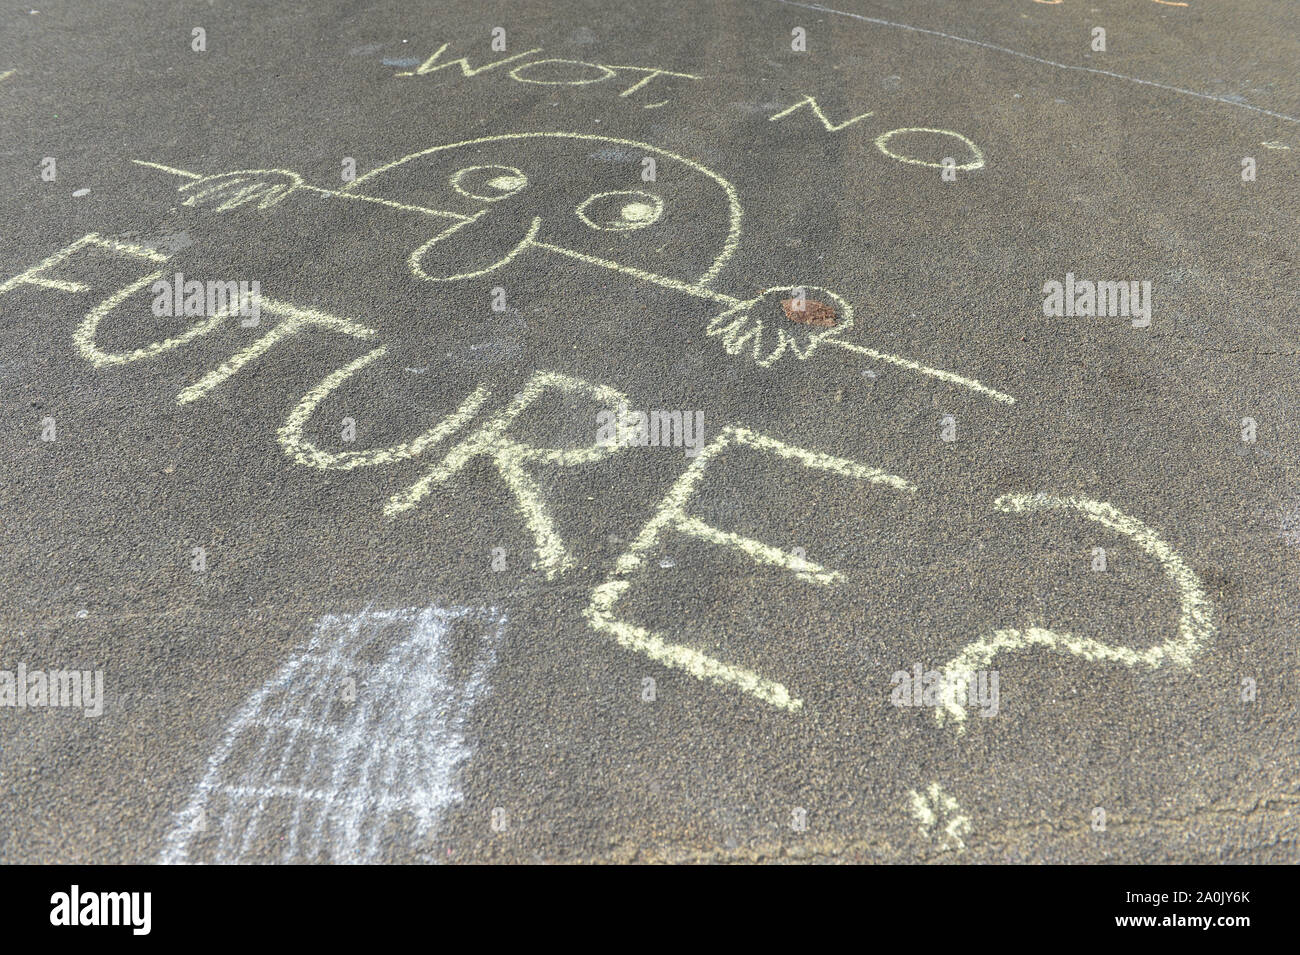 Glasgow, UK. 20 September 2019.  PICTURED: A chalk marked slogan which reads 'WOT NO FUTURE?' Will there be anything left for our future generations? Scenes from a planned protest in George Square this afternoon after strikes started a year ago by 16-year-old Swedish schoolgirl named Greta Thunberg. Hundreds of chalk marked slogans littered the concrete of George Square with protestors from all ages and backgrounds. Credit: Colin Fisher/Alamy Live News Stock Photo